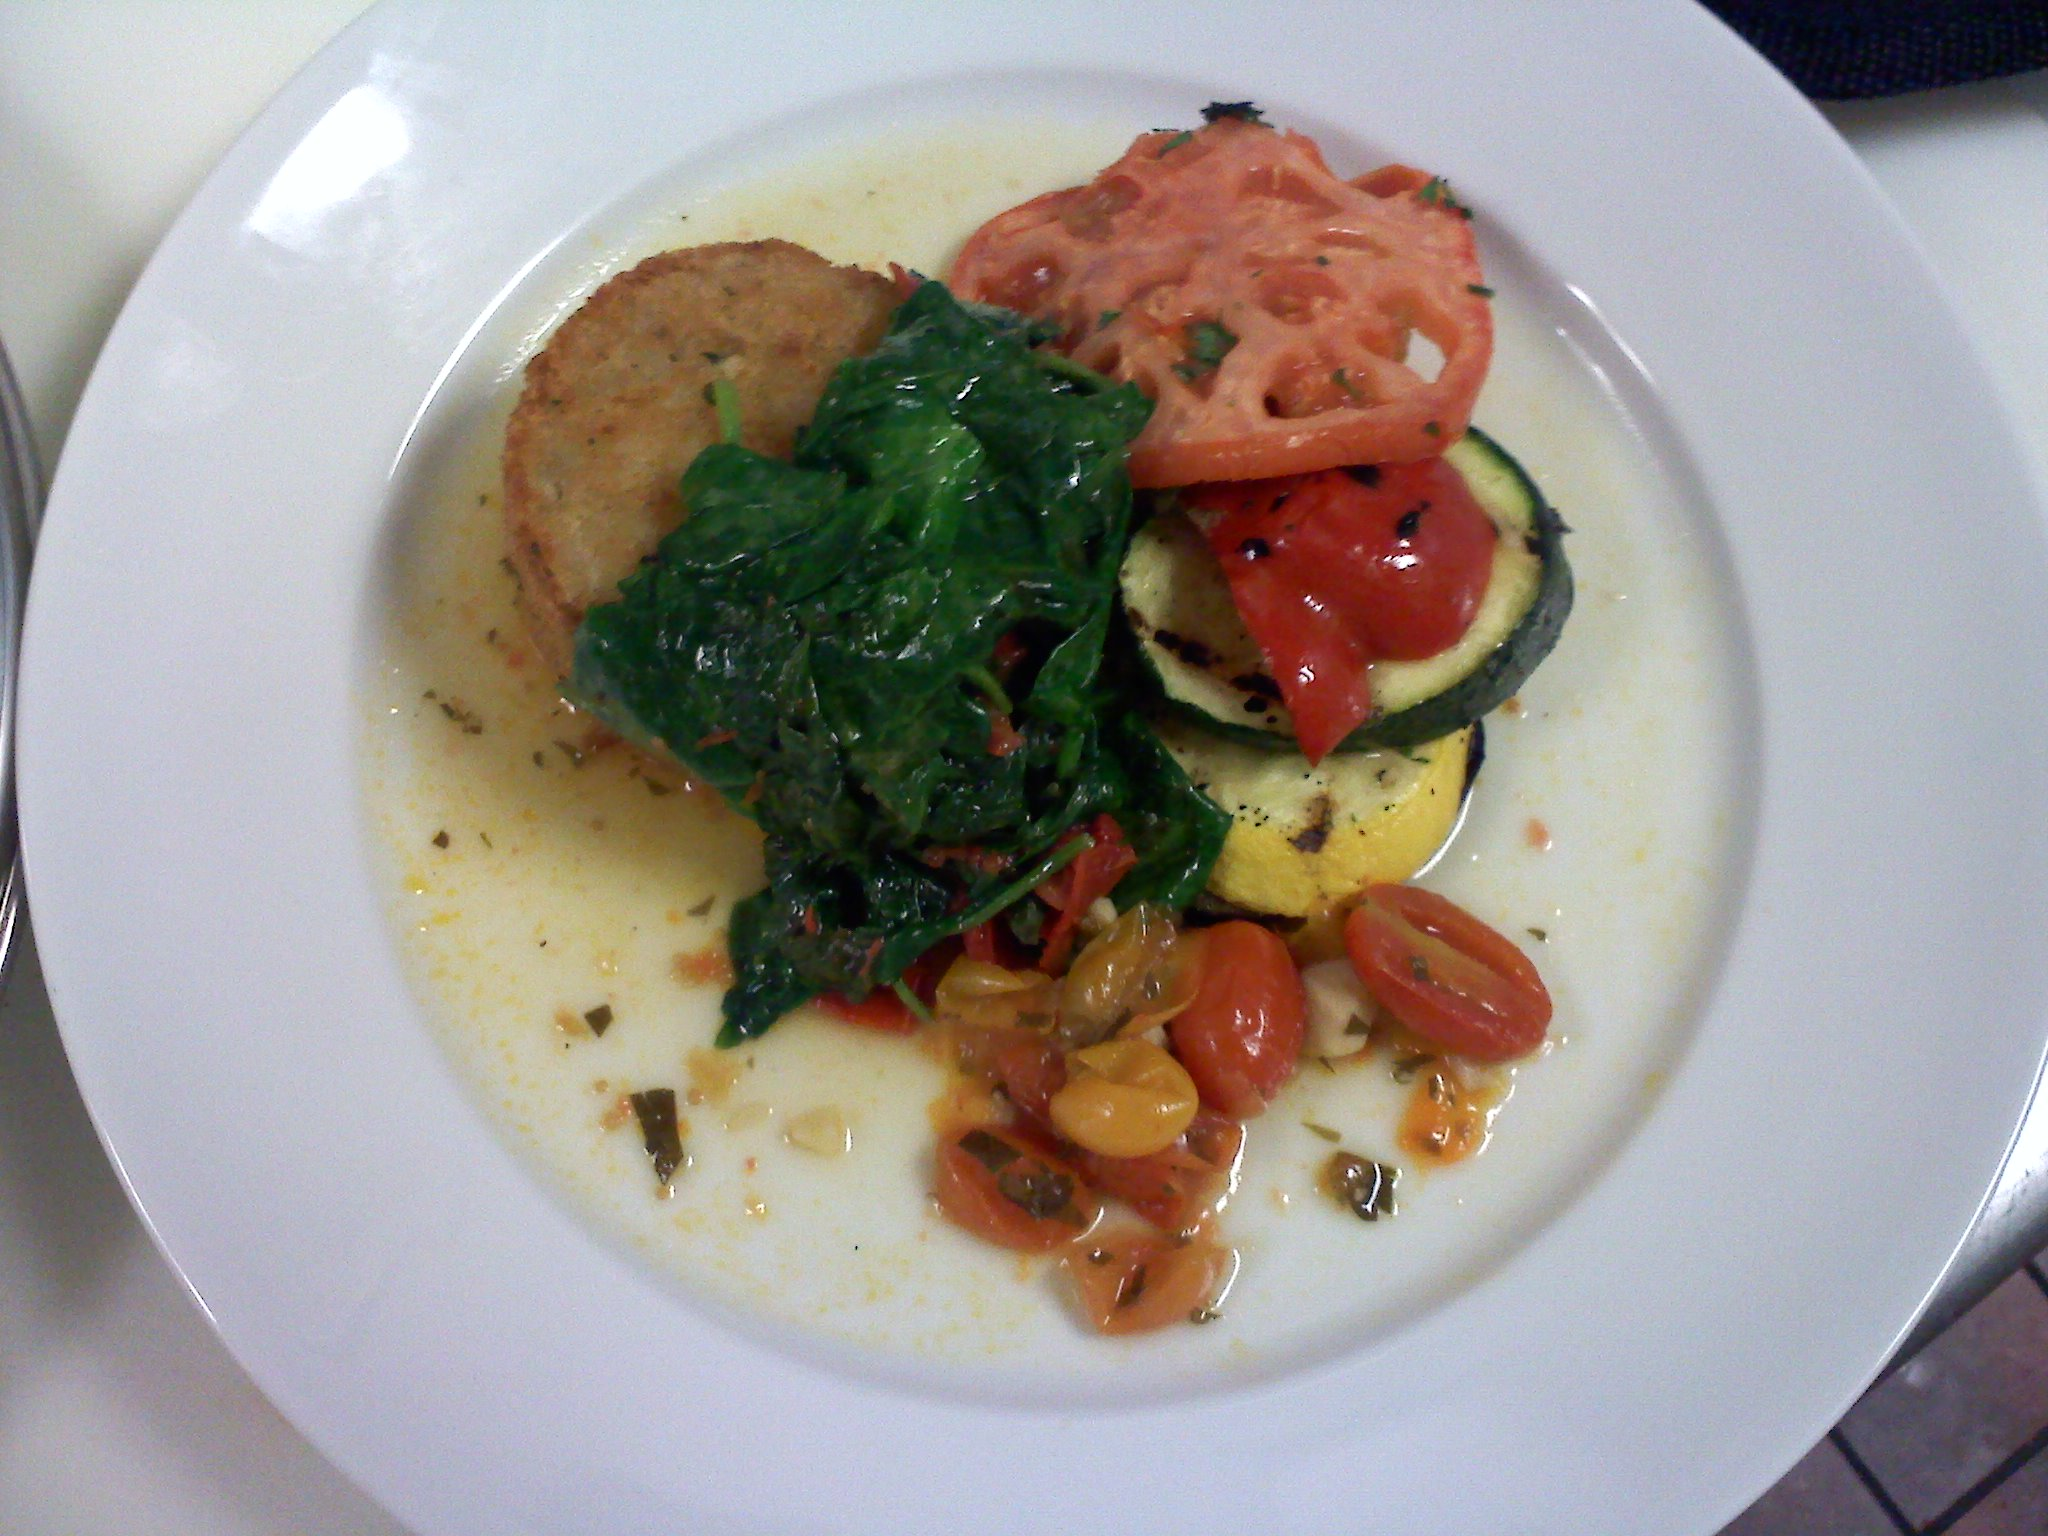 everett ma :: fried rissotto with summer veg stack sauteed spinach and rst tom with a rst tom broth